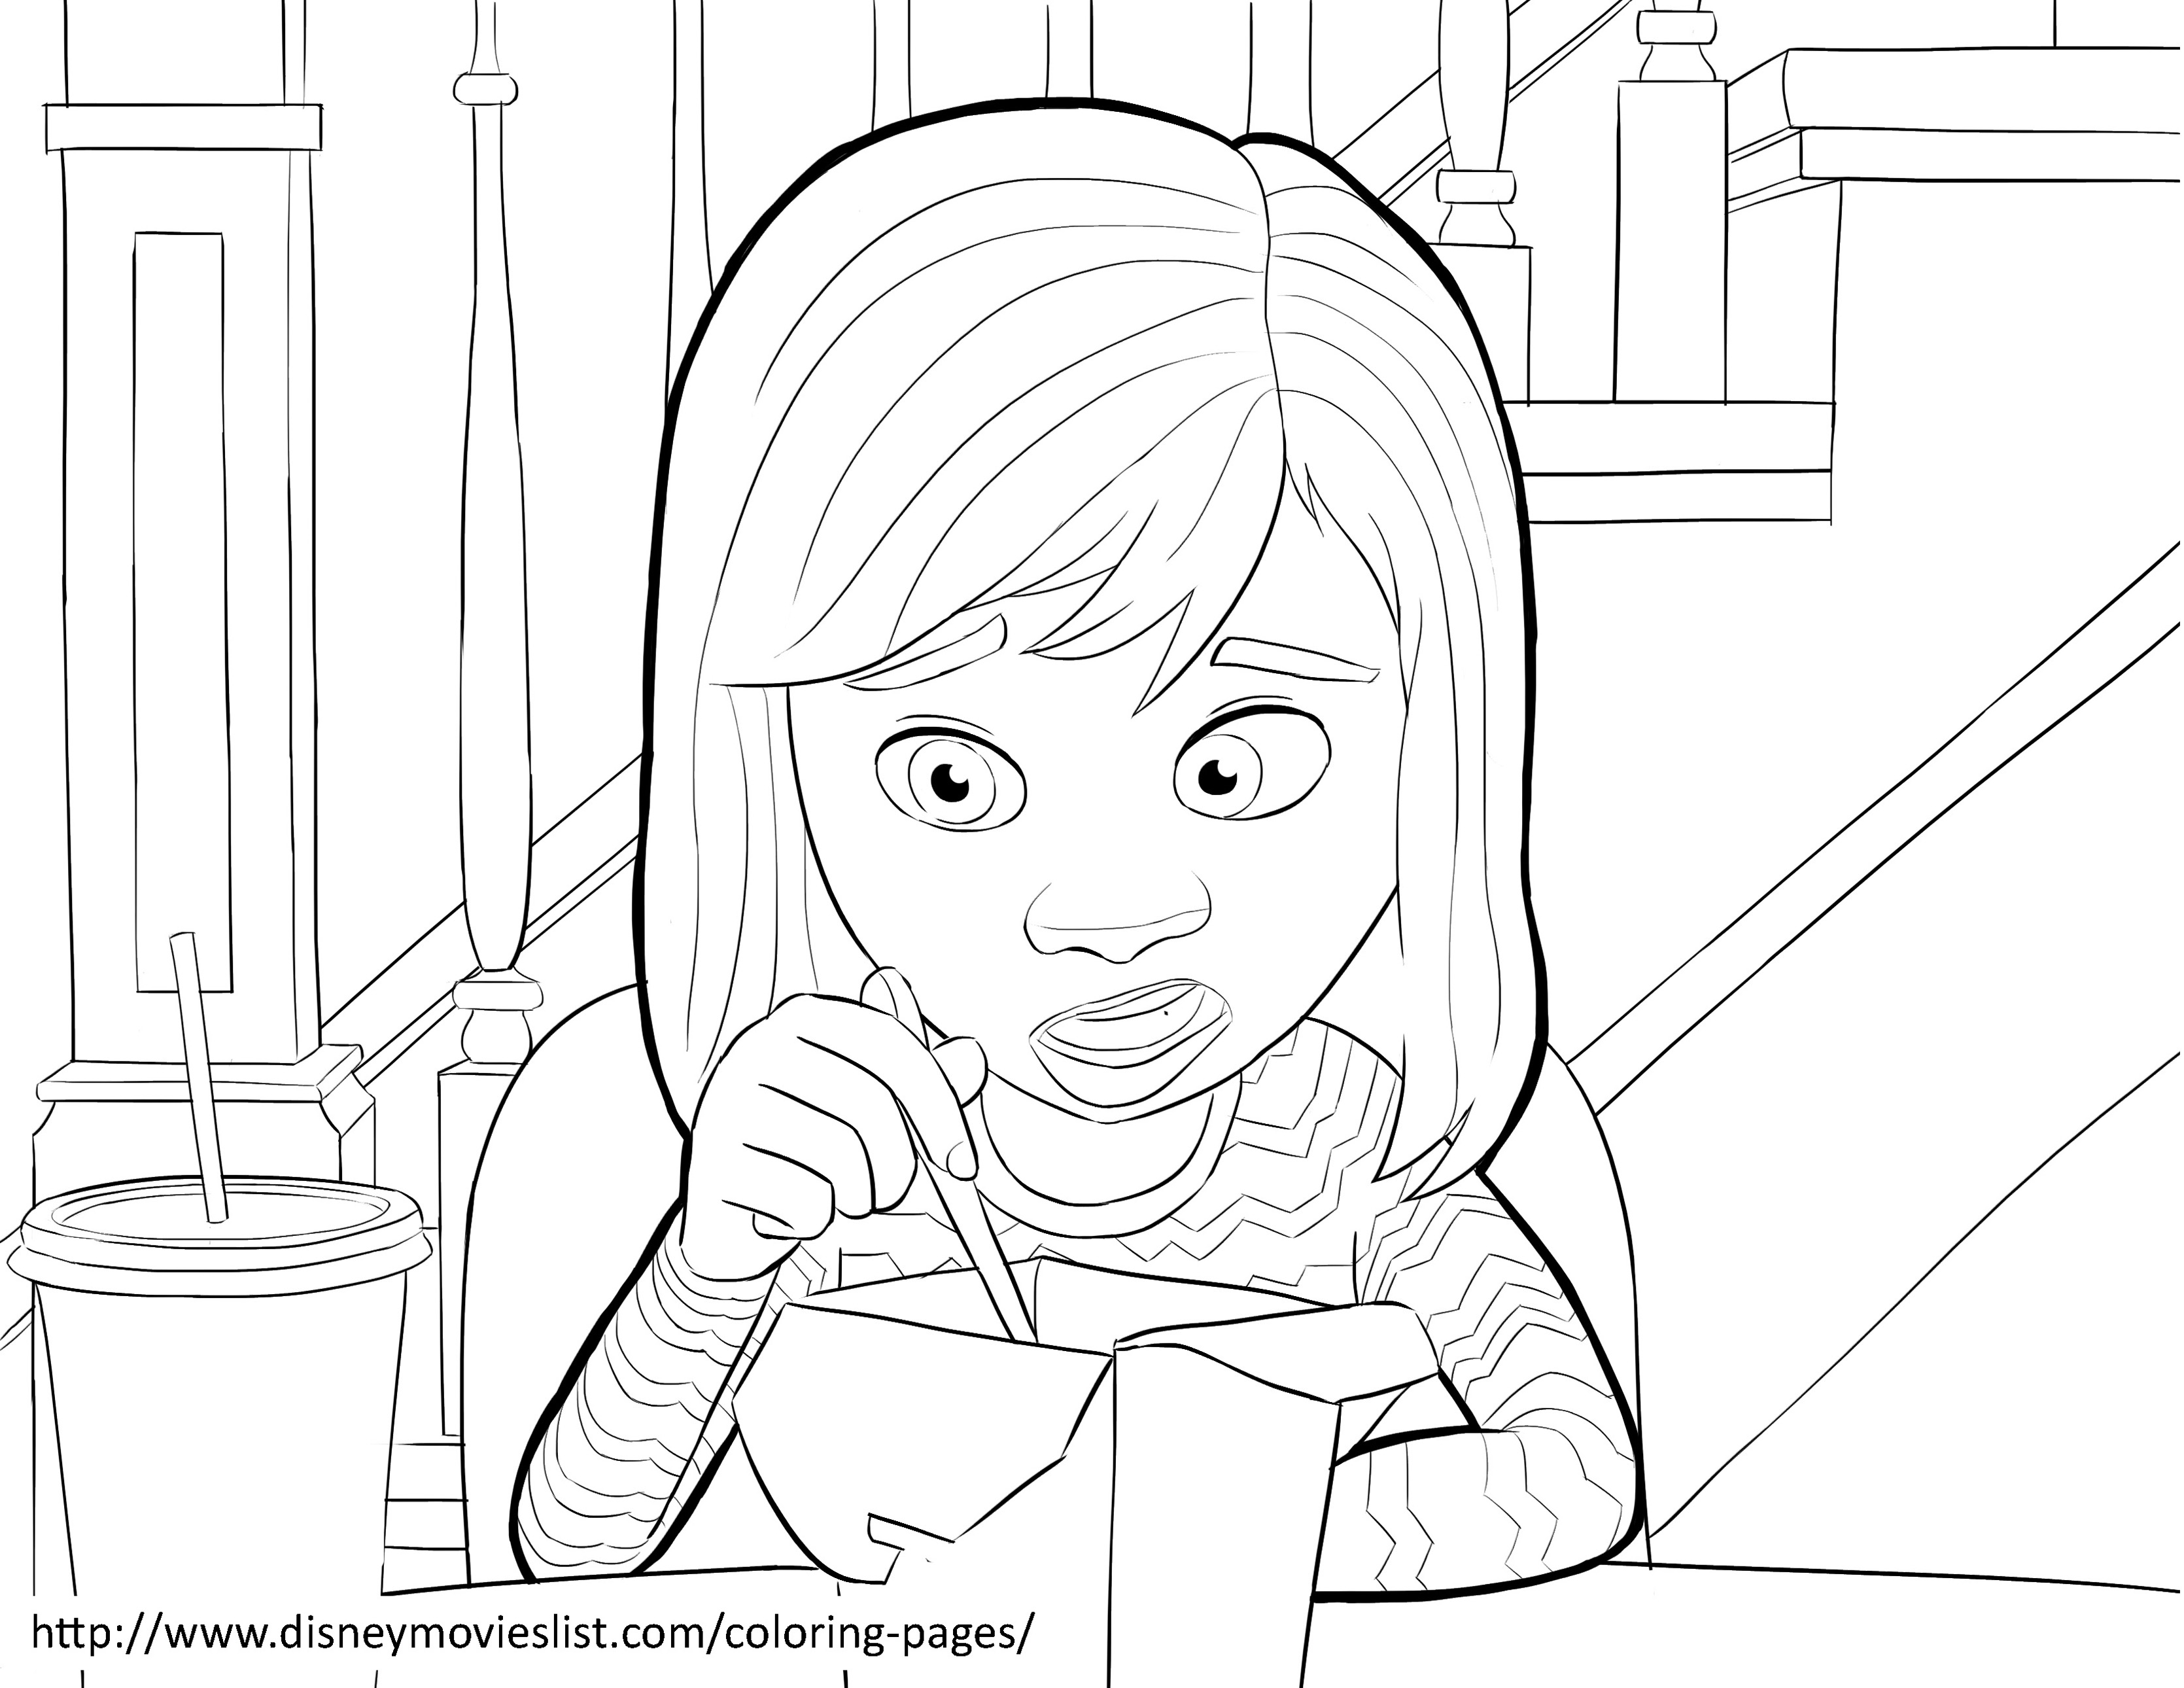 Inside Out Coloring Page To Download For Free